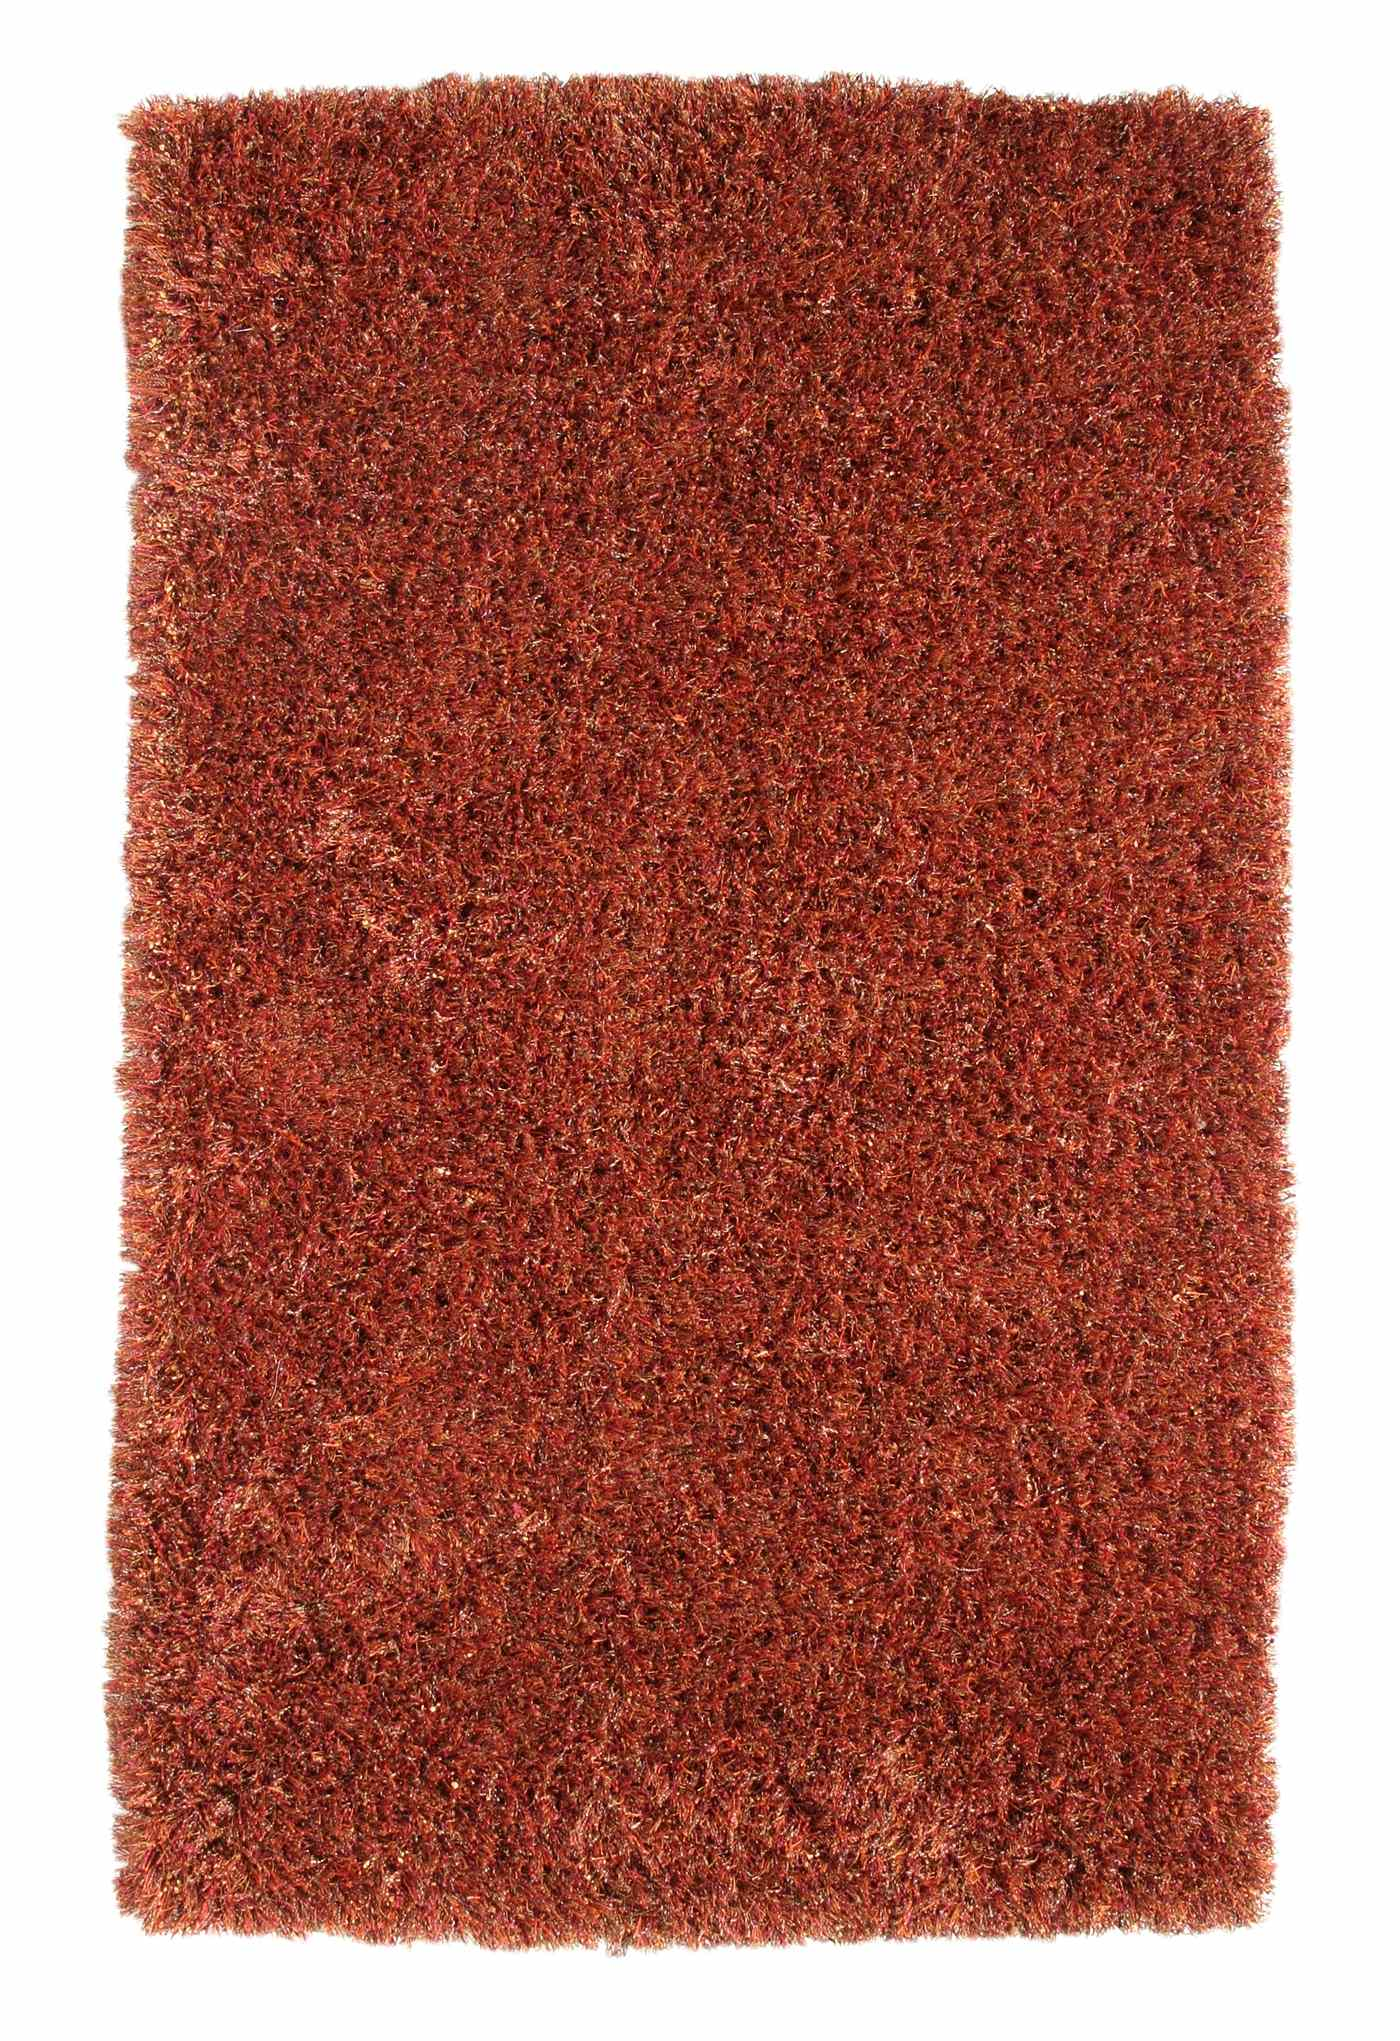 Dynamic Rugs Venetian Rust 2500 Area Rug